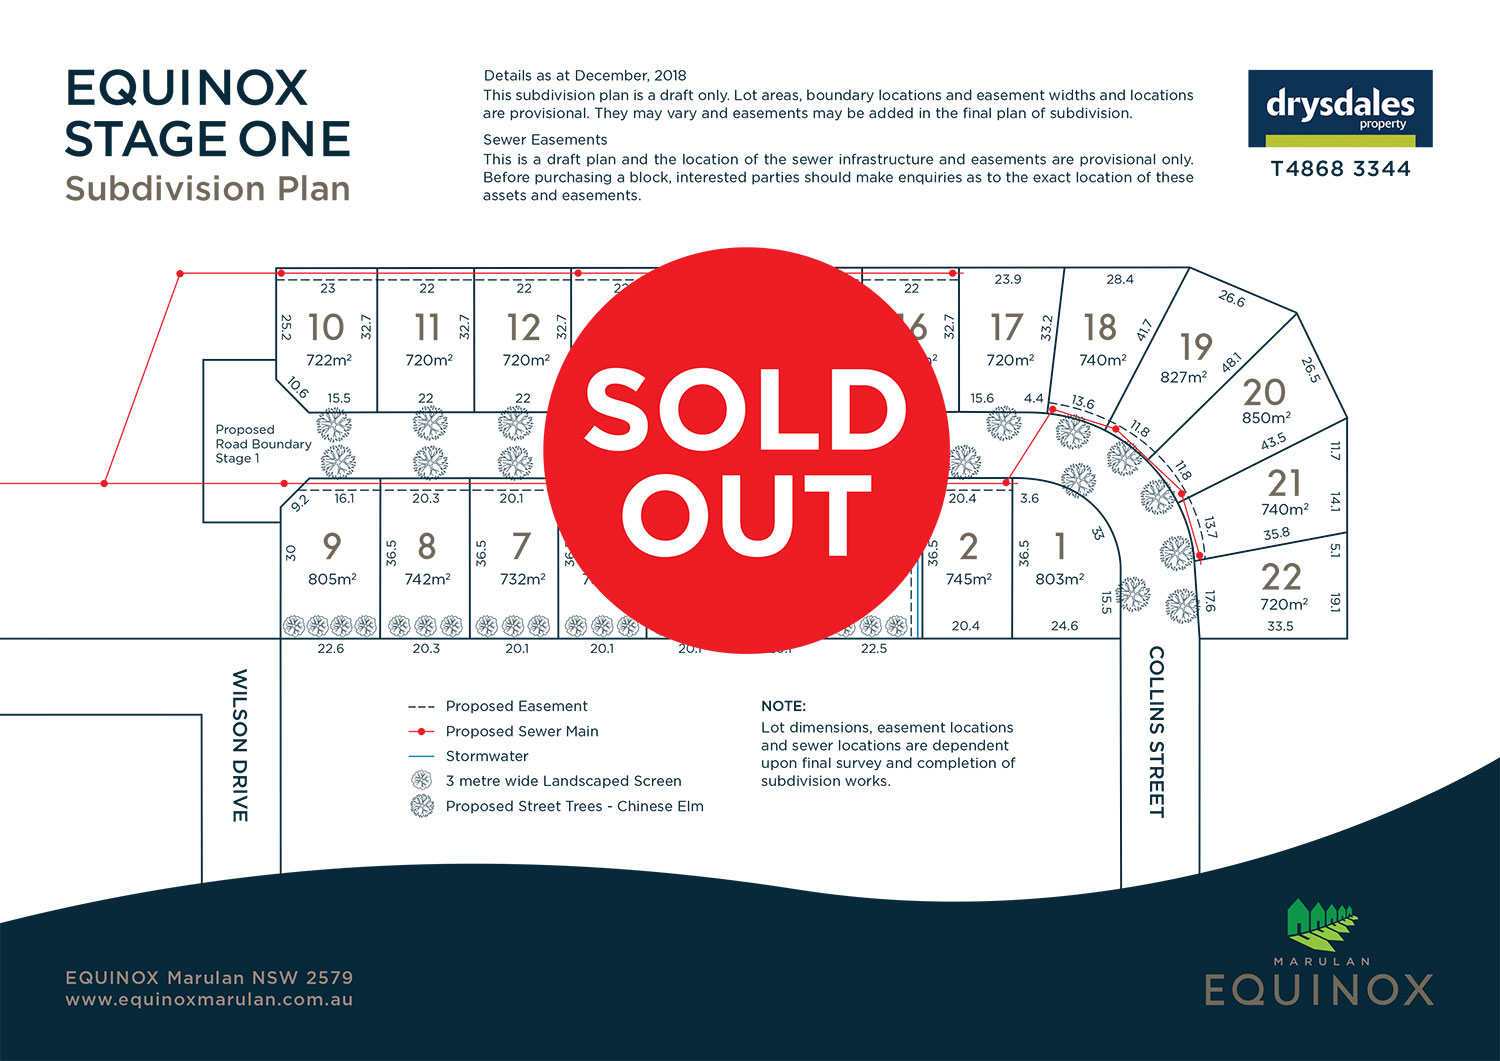 Equinox Stage 1 Development Sold Out